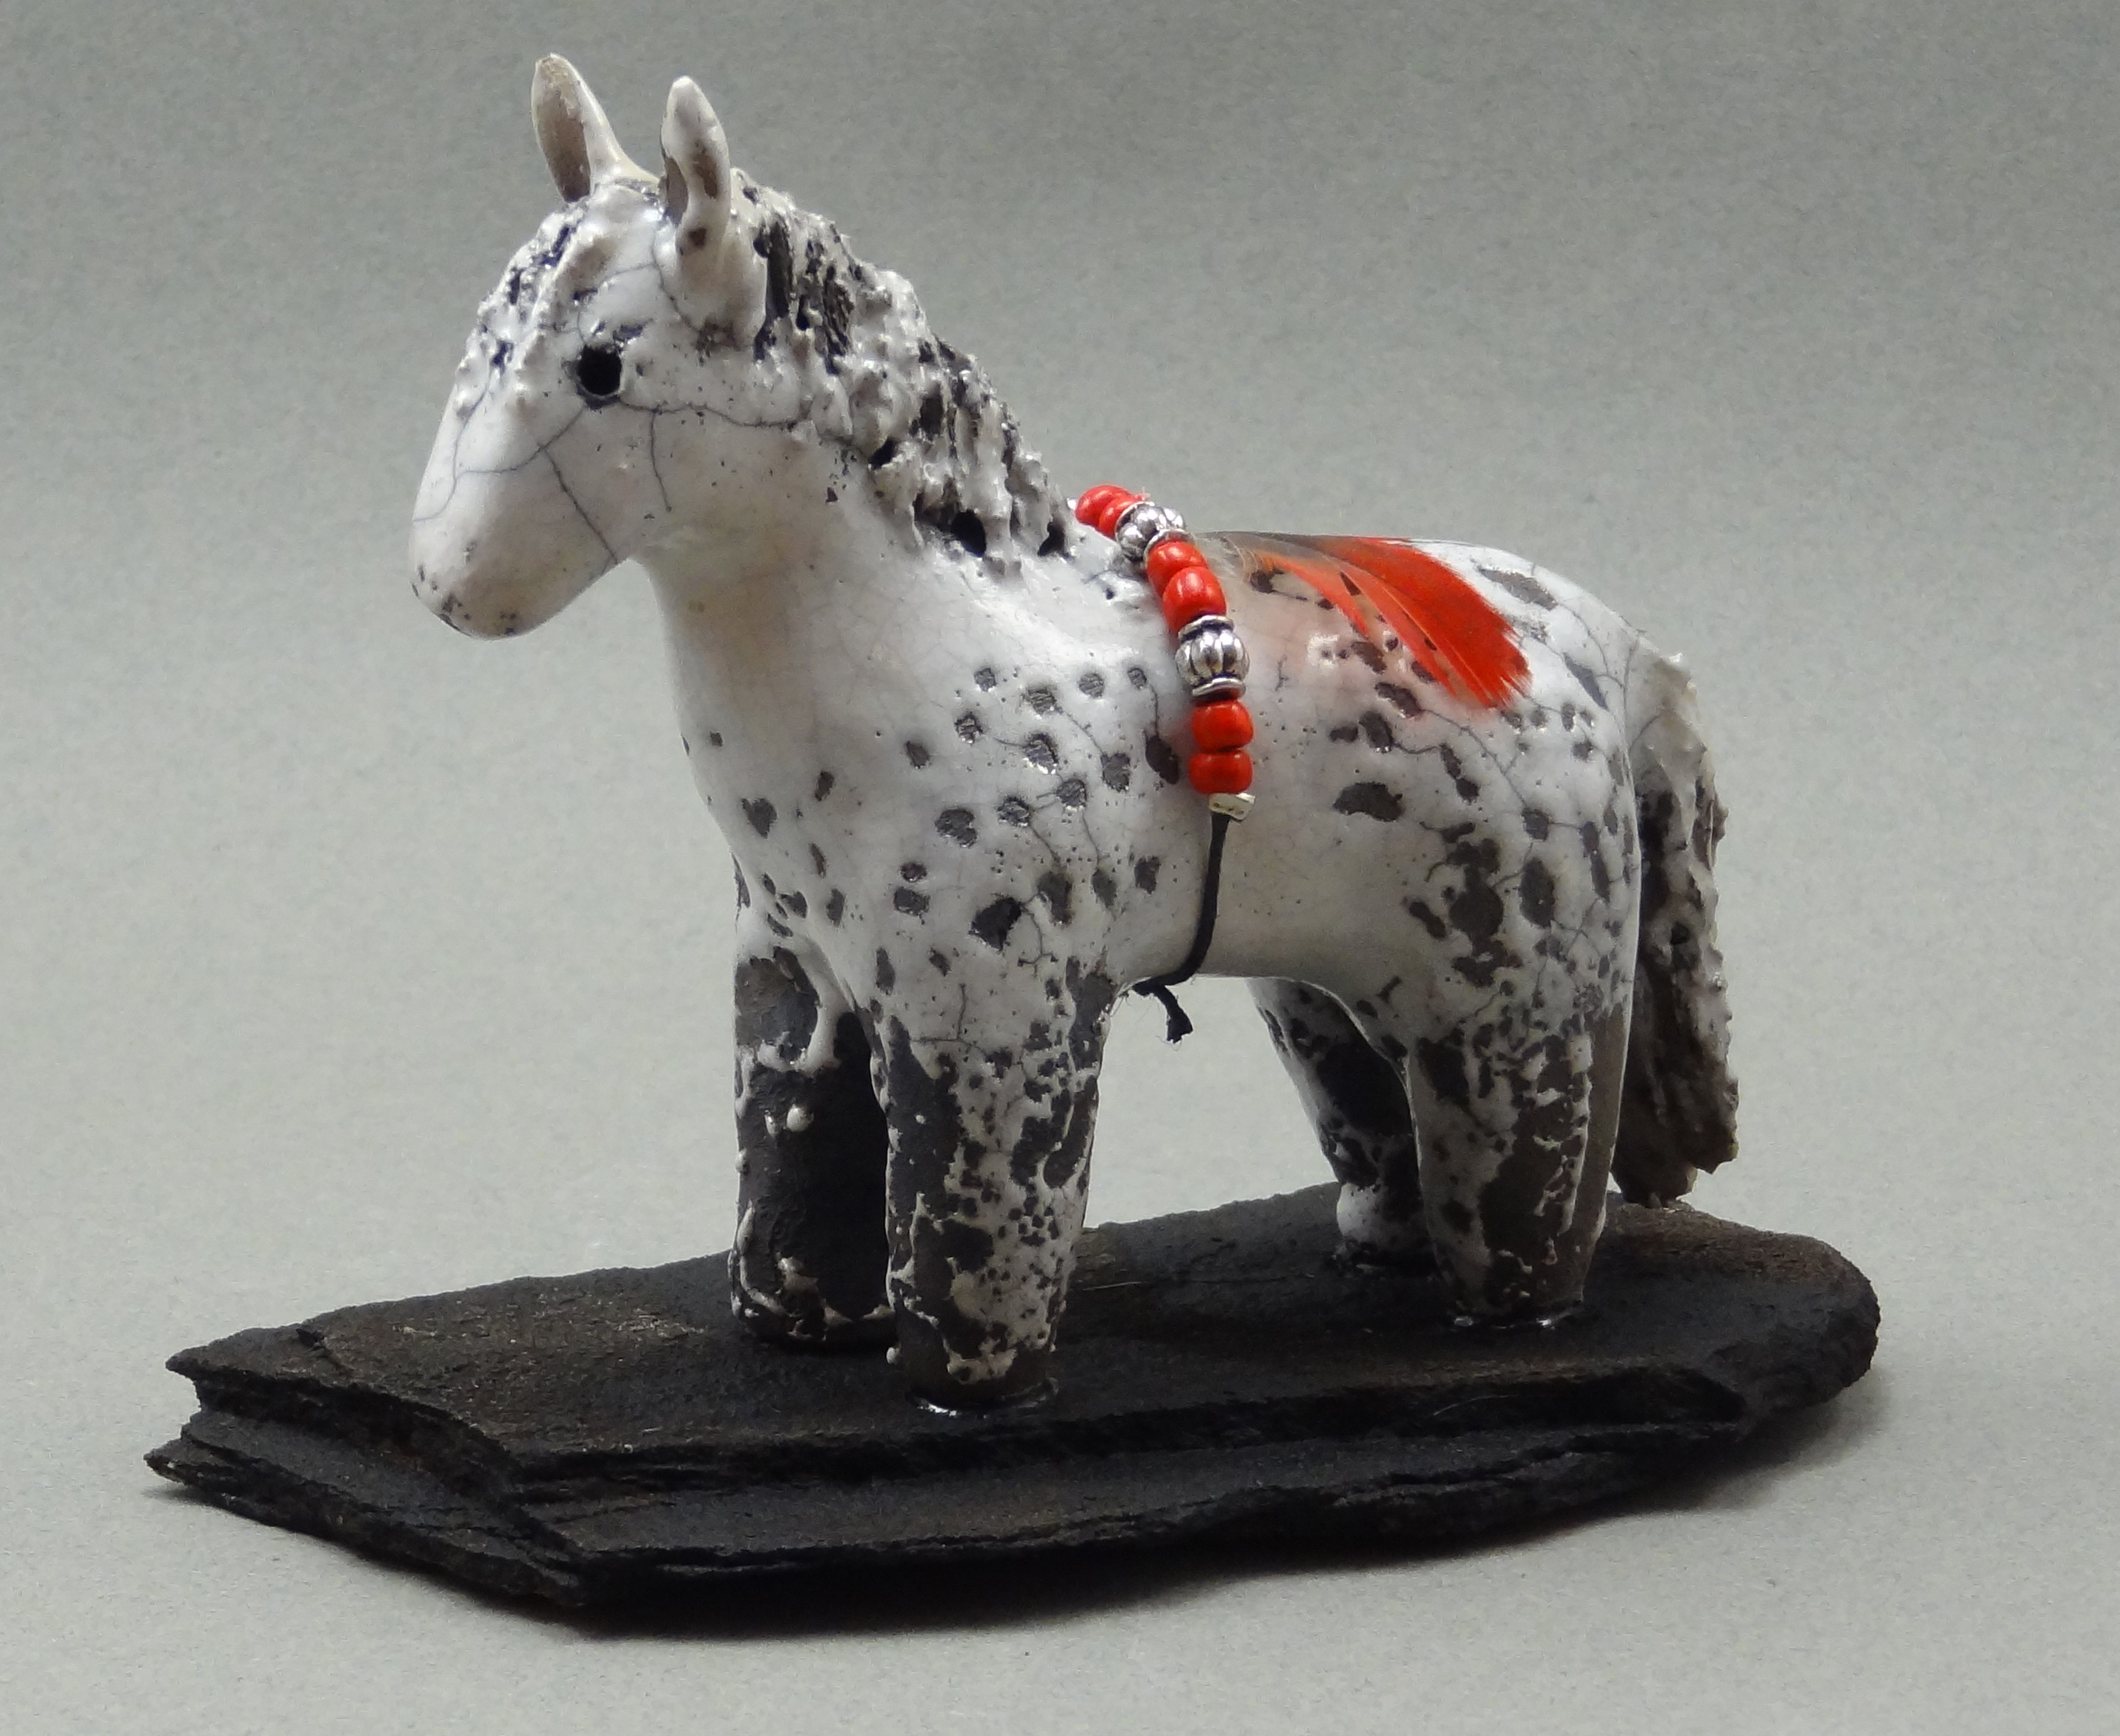 Horse, White Crackle glaze, raku fired, 4 x 3.5 x 1 inch, mounted on flagstone